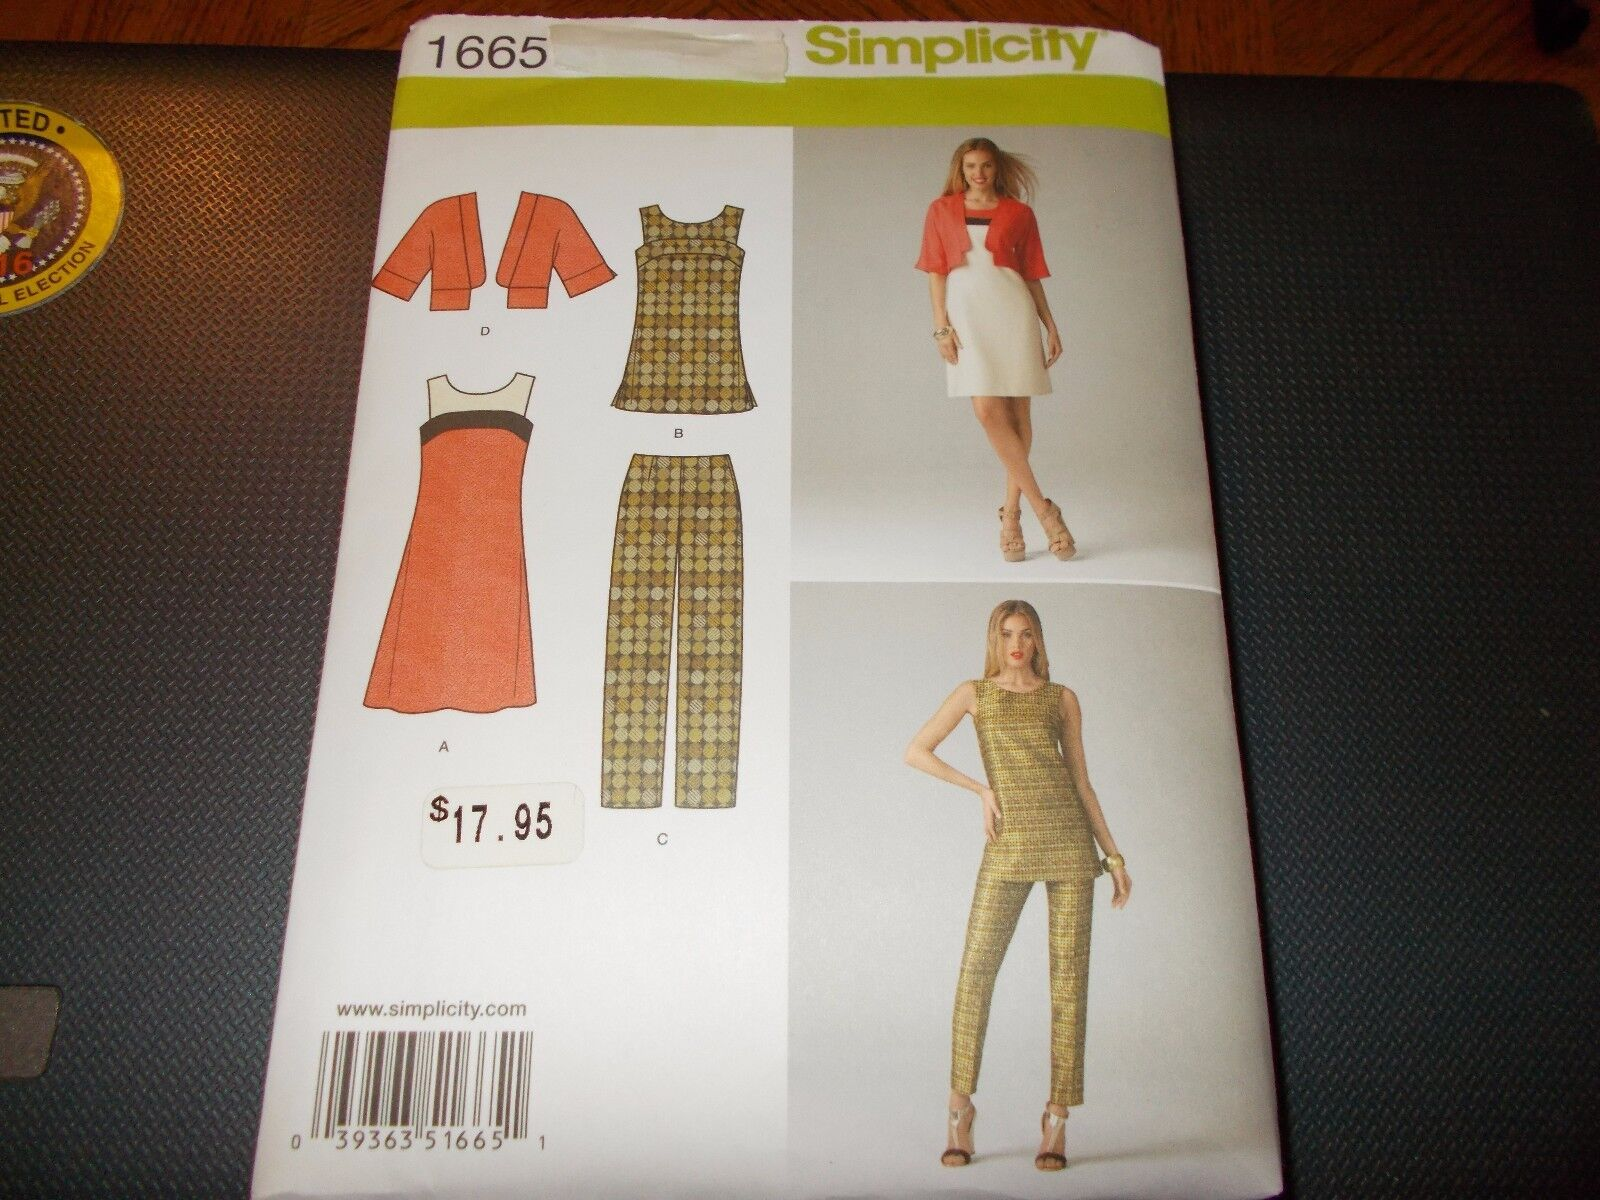 Dress /& Tunic Jacket Vintage Look Simplicity Pattern 1665 Size 6-14 or 14-22